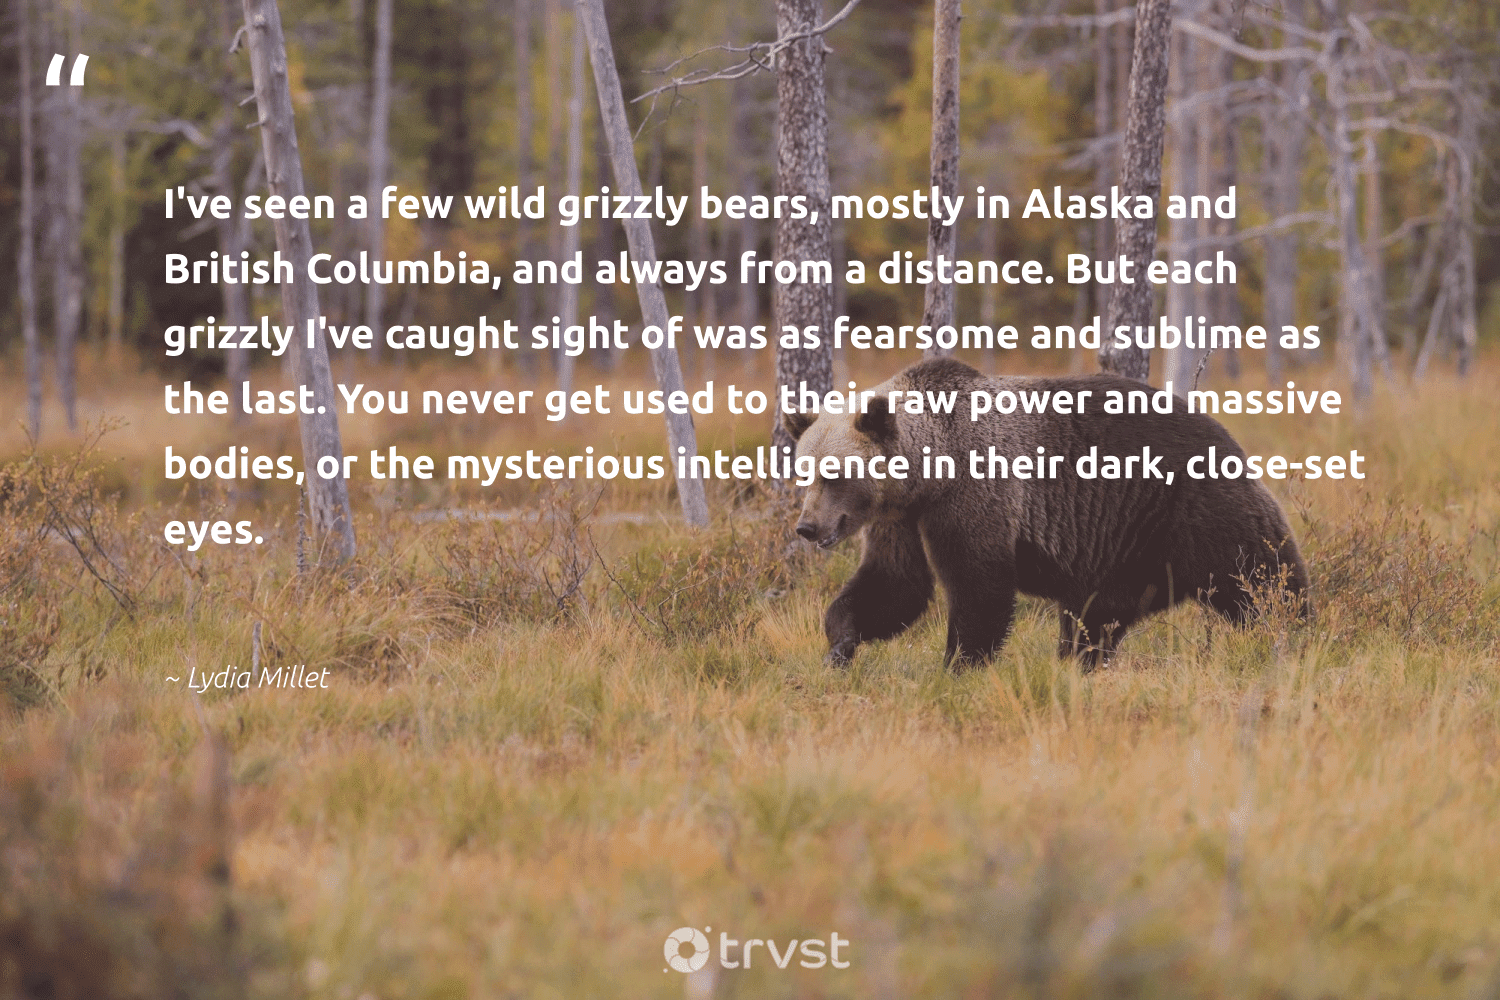 """""""I've seen a few wild grizzly bears, mostly in Alaska and British Columbia, and always from a distance. But each grizzly I've caught sight of was as fearsome and sublime as the last. You never get used to their raw power and massive bodies, or the mysterious intelligence in their dark, close-set eyes.""""  - Lydia Millet #trvst #quotes #wild #bears #protectnature #thinkgreen #bearlove #collectiveaction #wildlifeprotection #beinspired #amazingworld #changetheworld"""